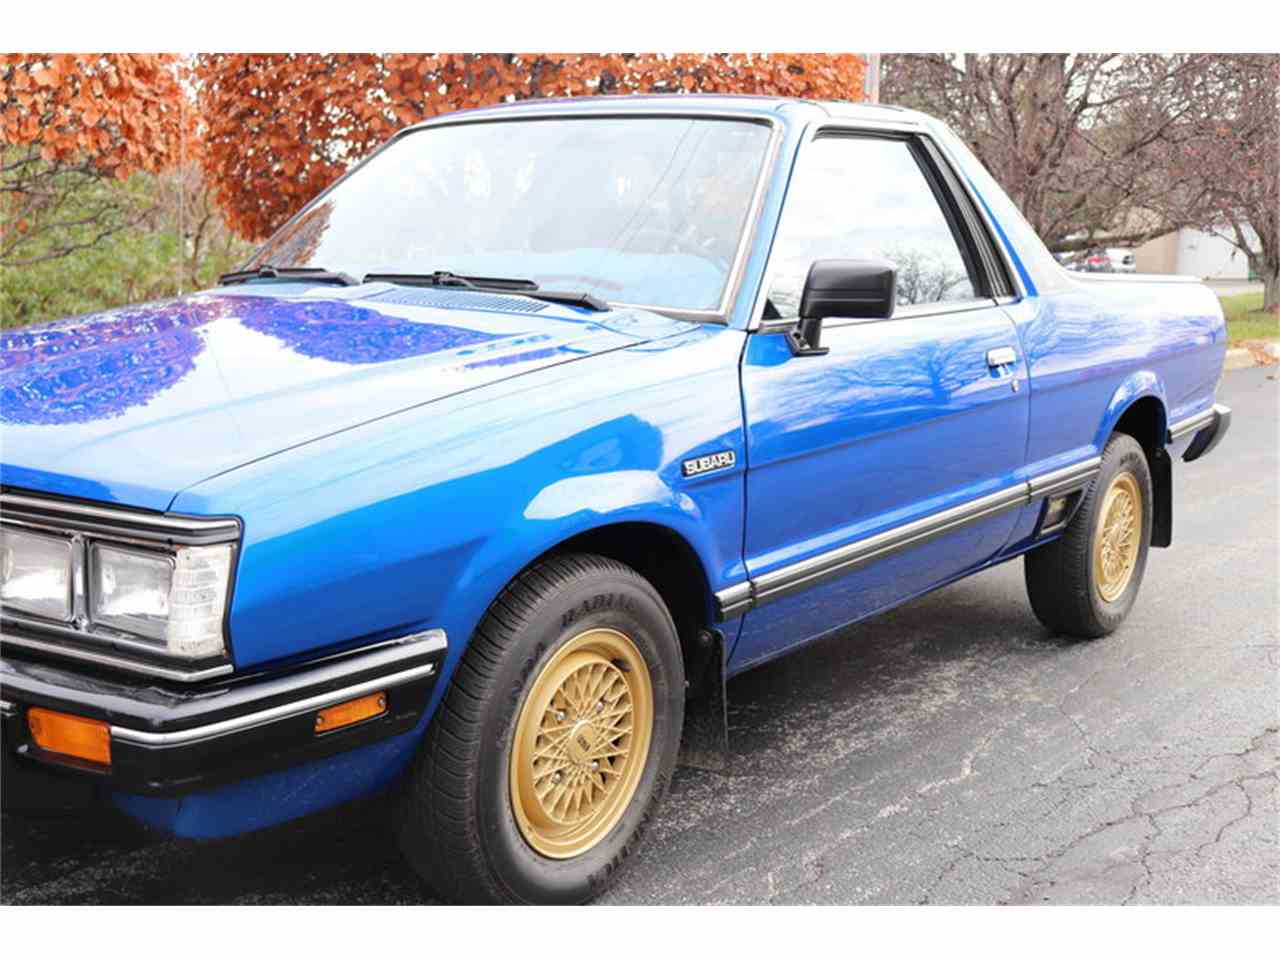 Large Picture of 1983 Subaru Brat located in Illinois - $14,900.00 Offered by Midwest Car Exchange - M4TU